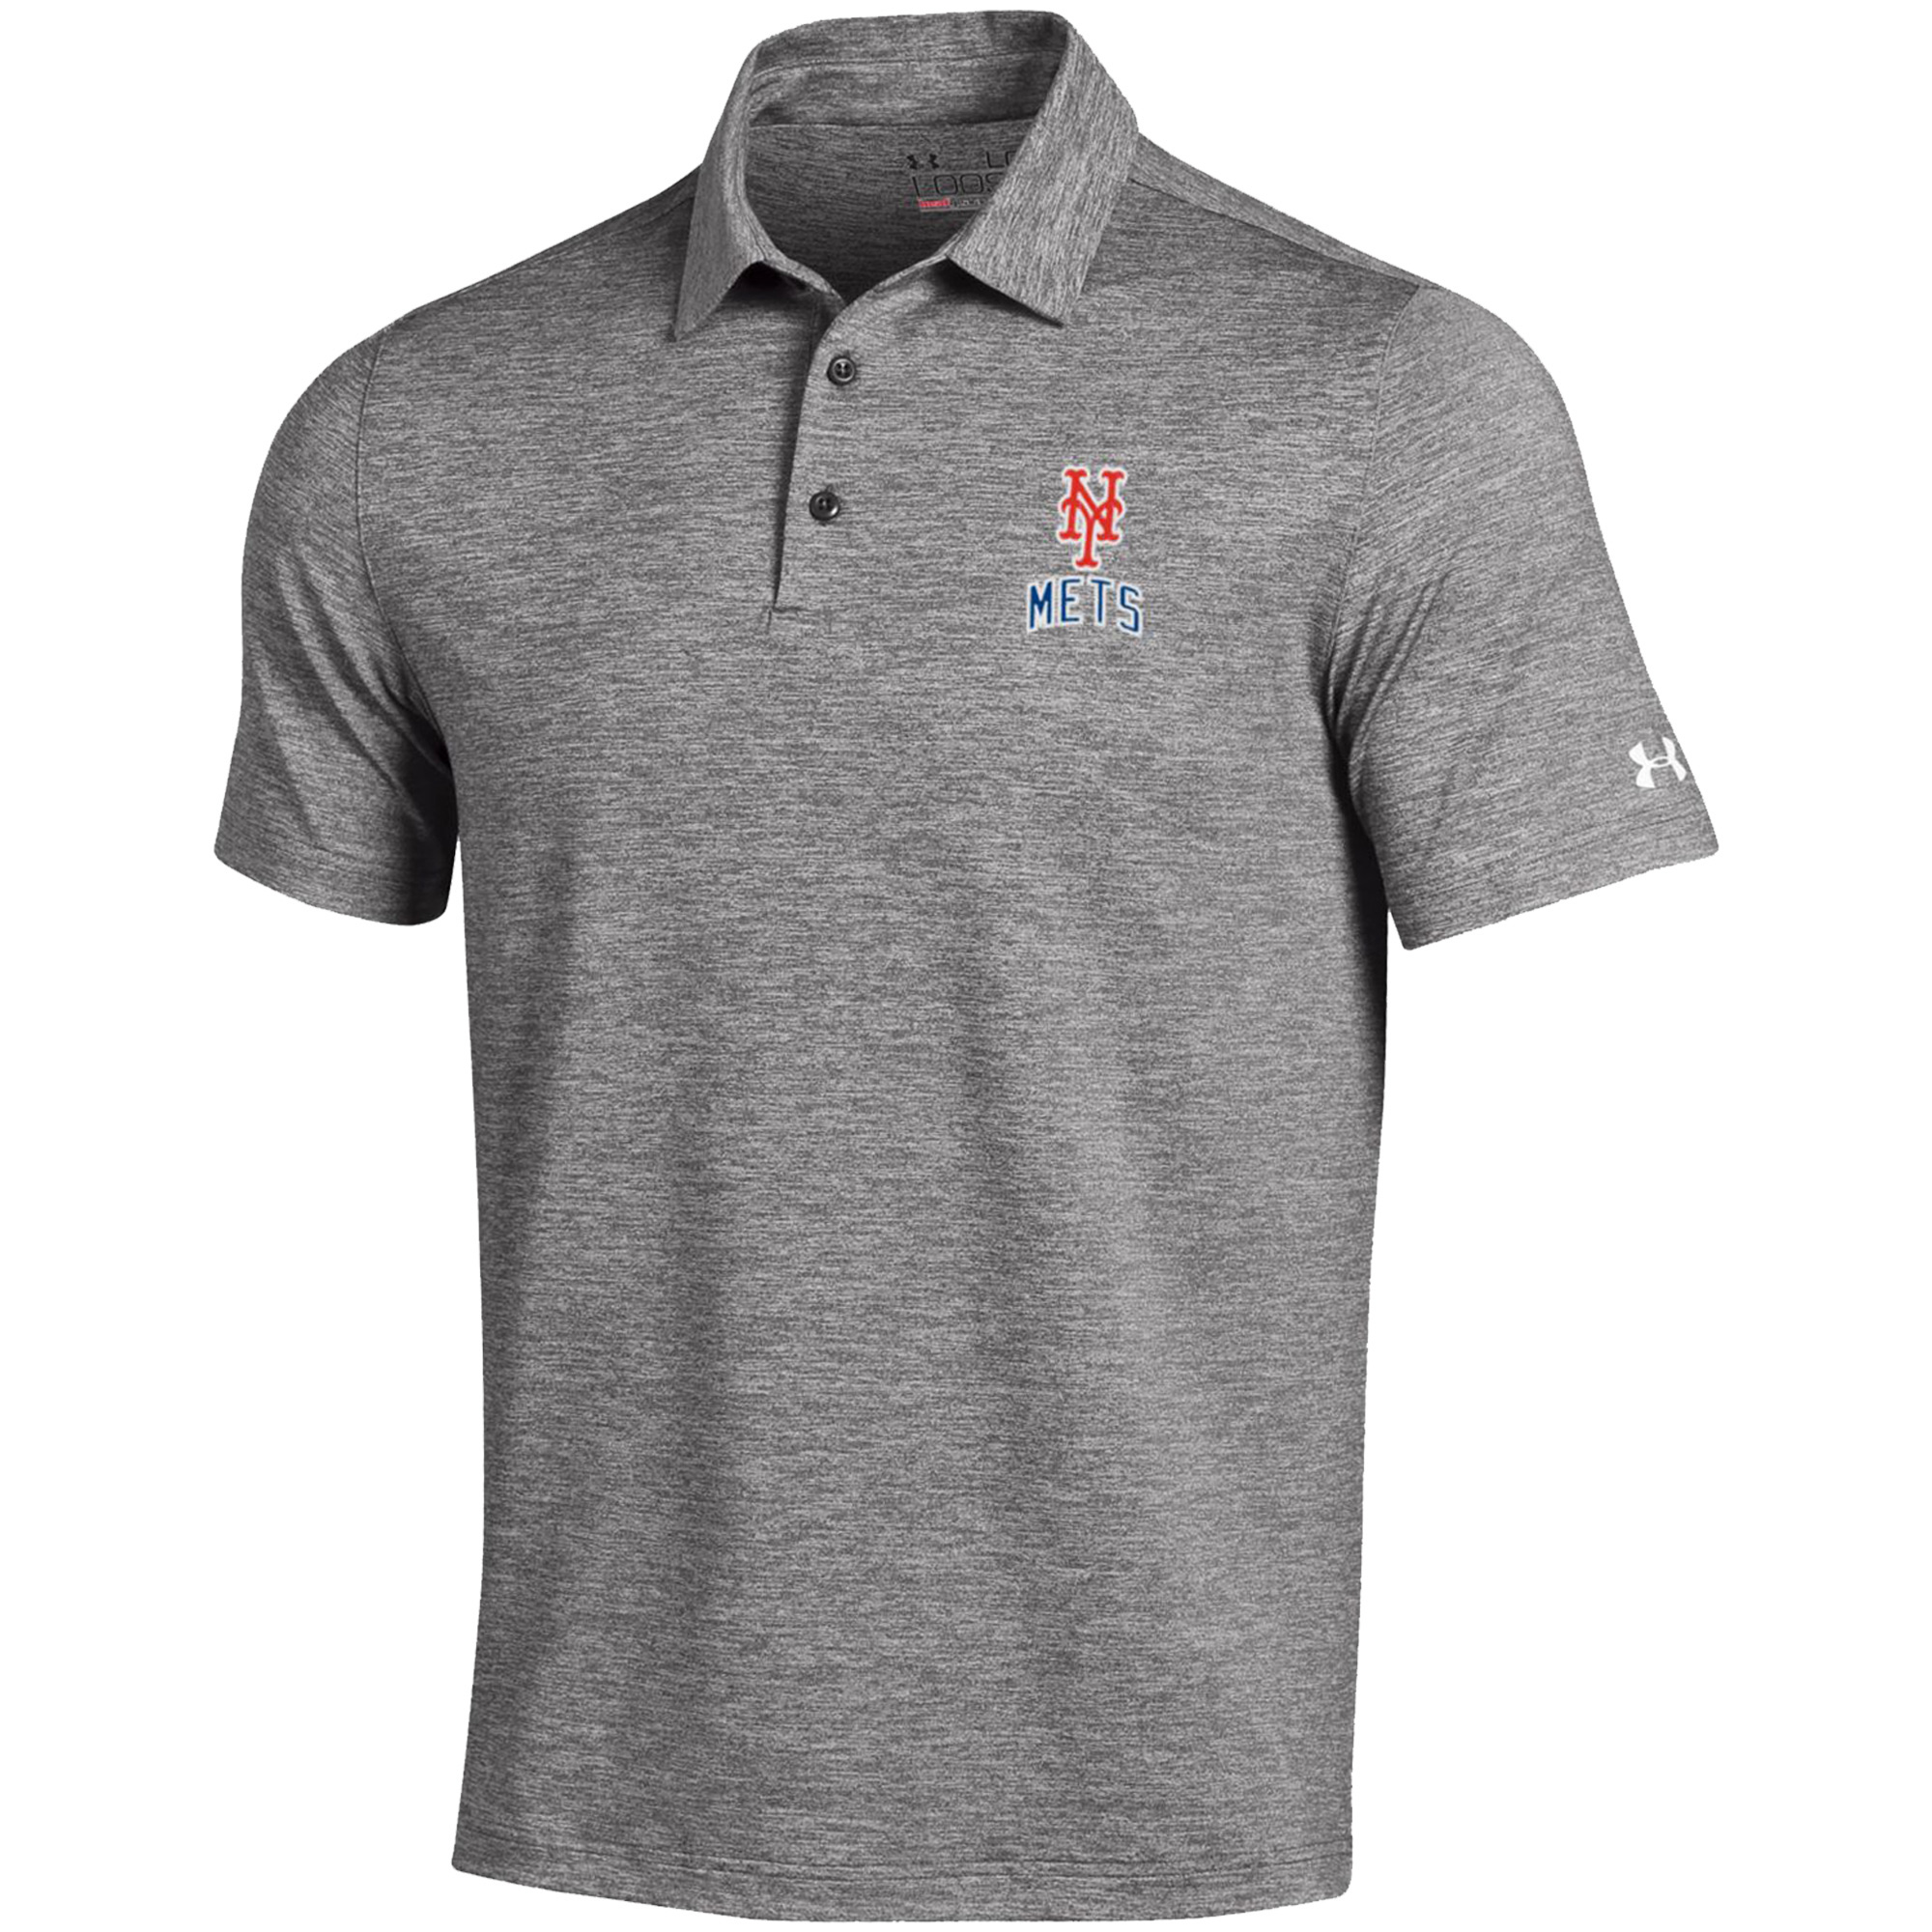 Men's Under Armour Gray New York Mets Elevated Heather Performance Polo